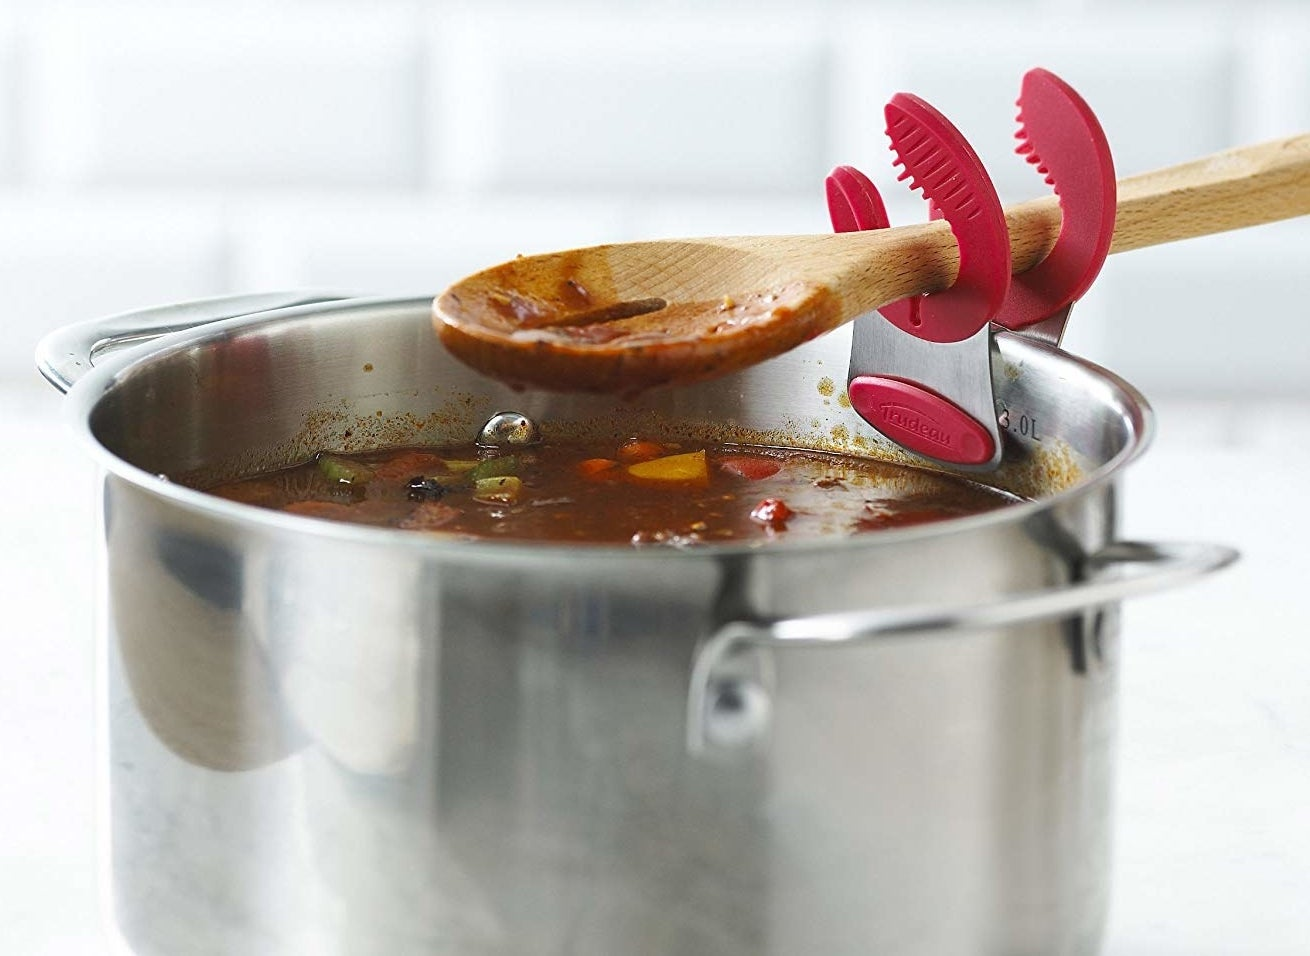 The clips holding a wooden spoon over a pot of sauce or soup